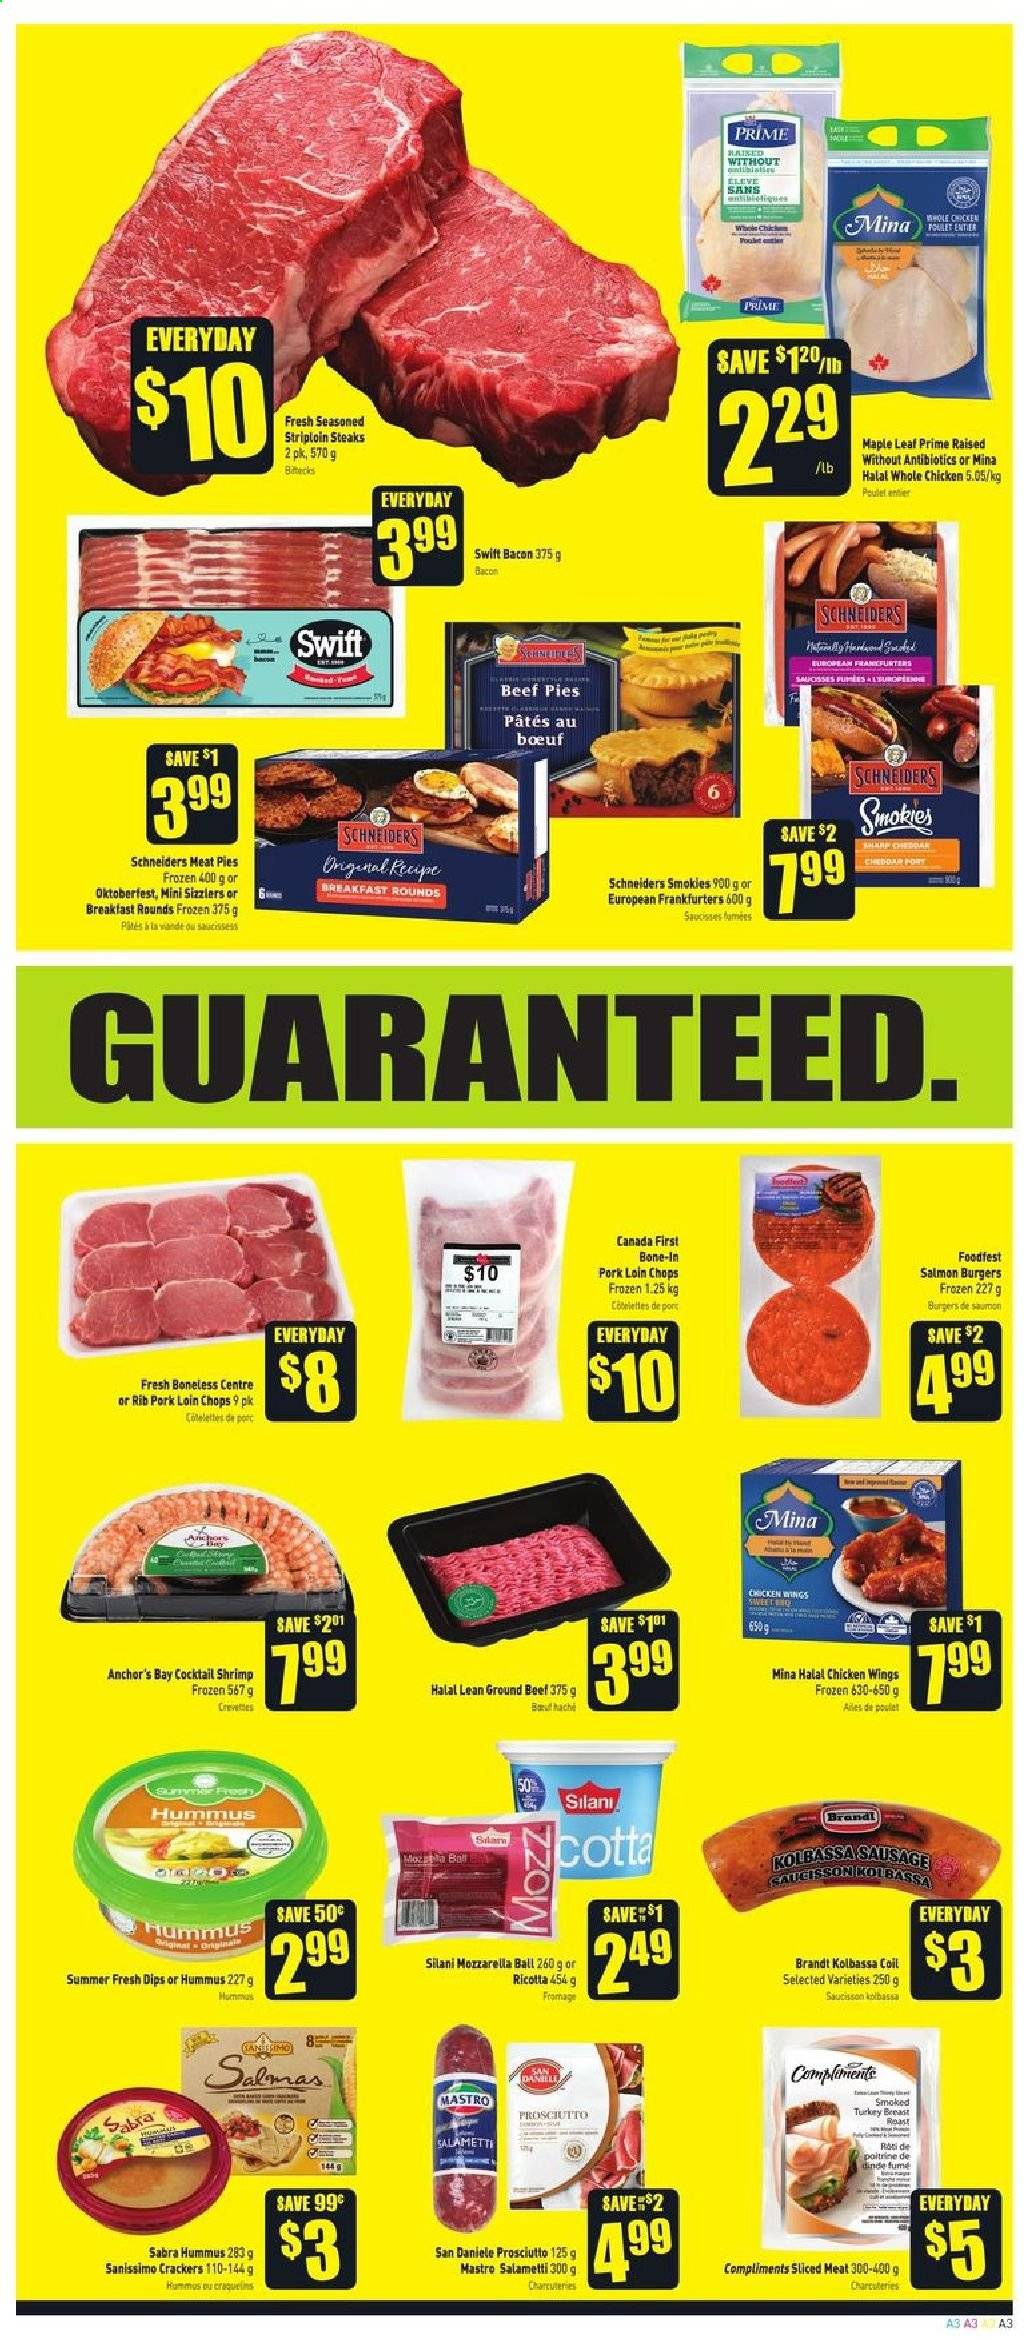 FreshCo. Flyer  - April 18, 2019 - April 24, 2019. Page 3.